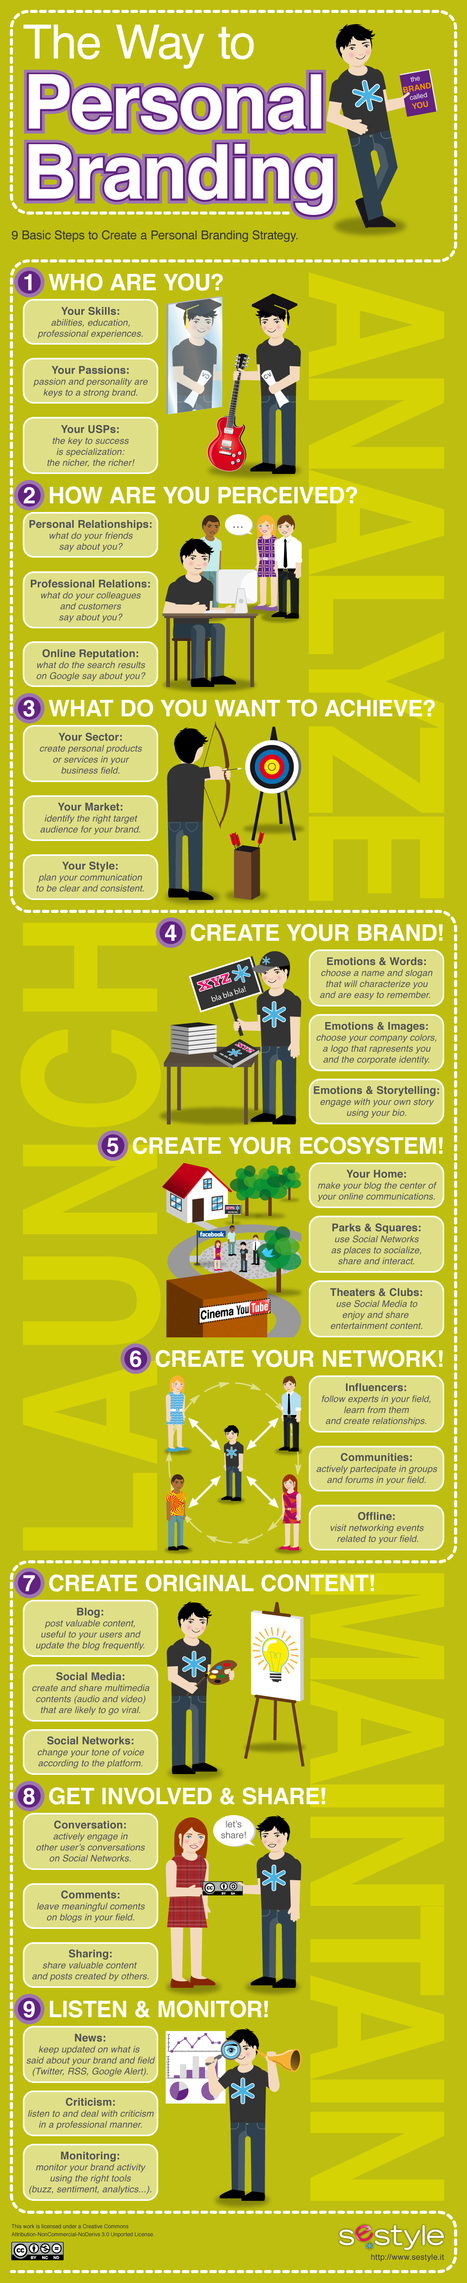 INFOGRAPHIC: Personal Branding in 9 Simple Steps | The Second Mile | Scoop.it